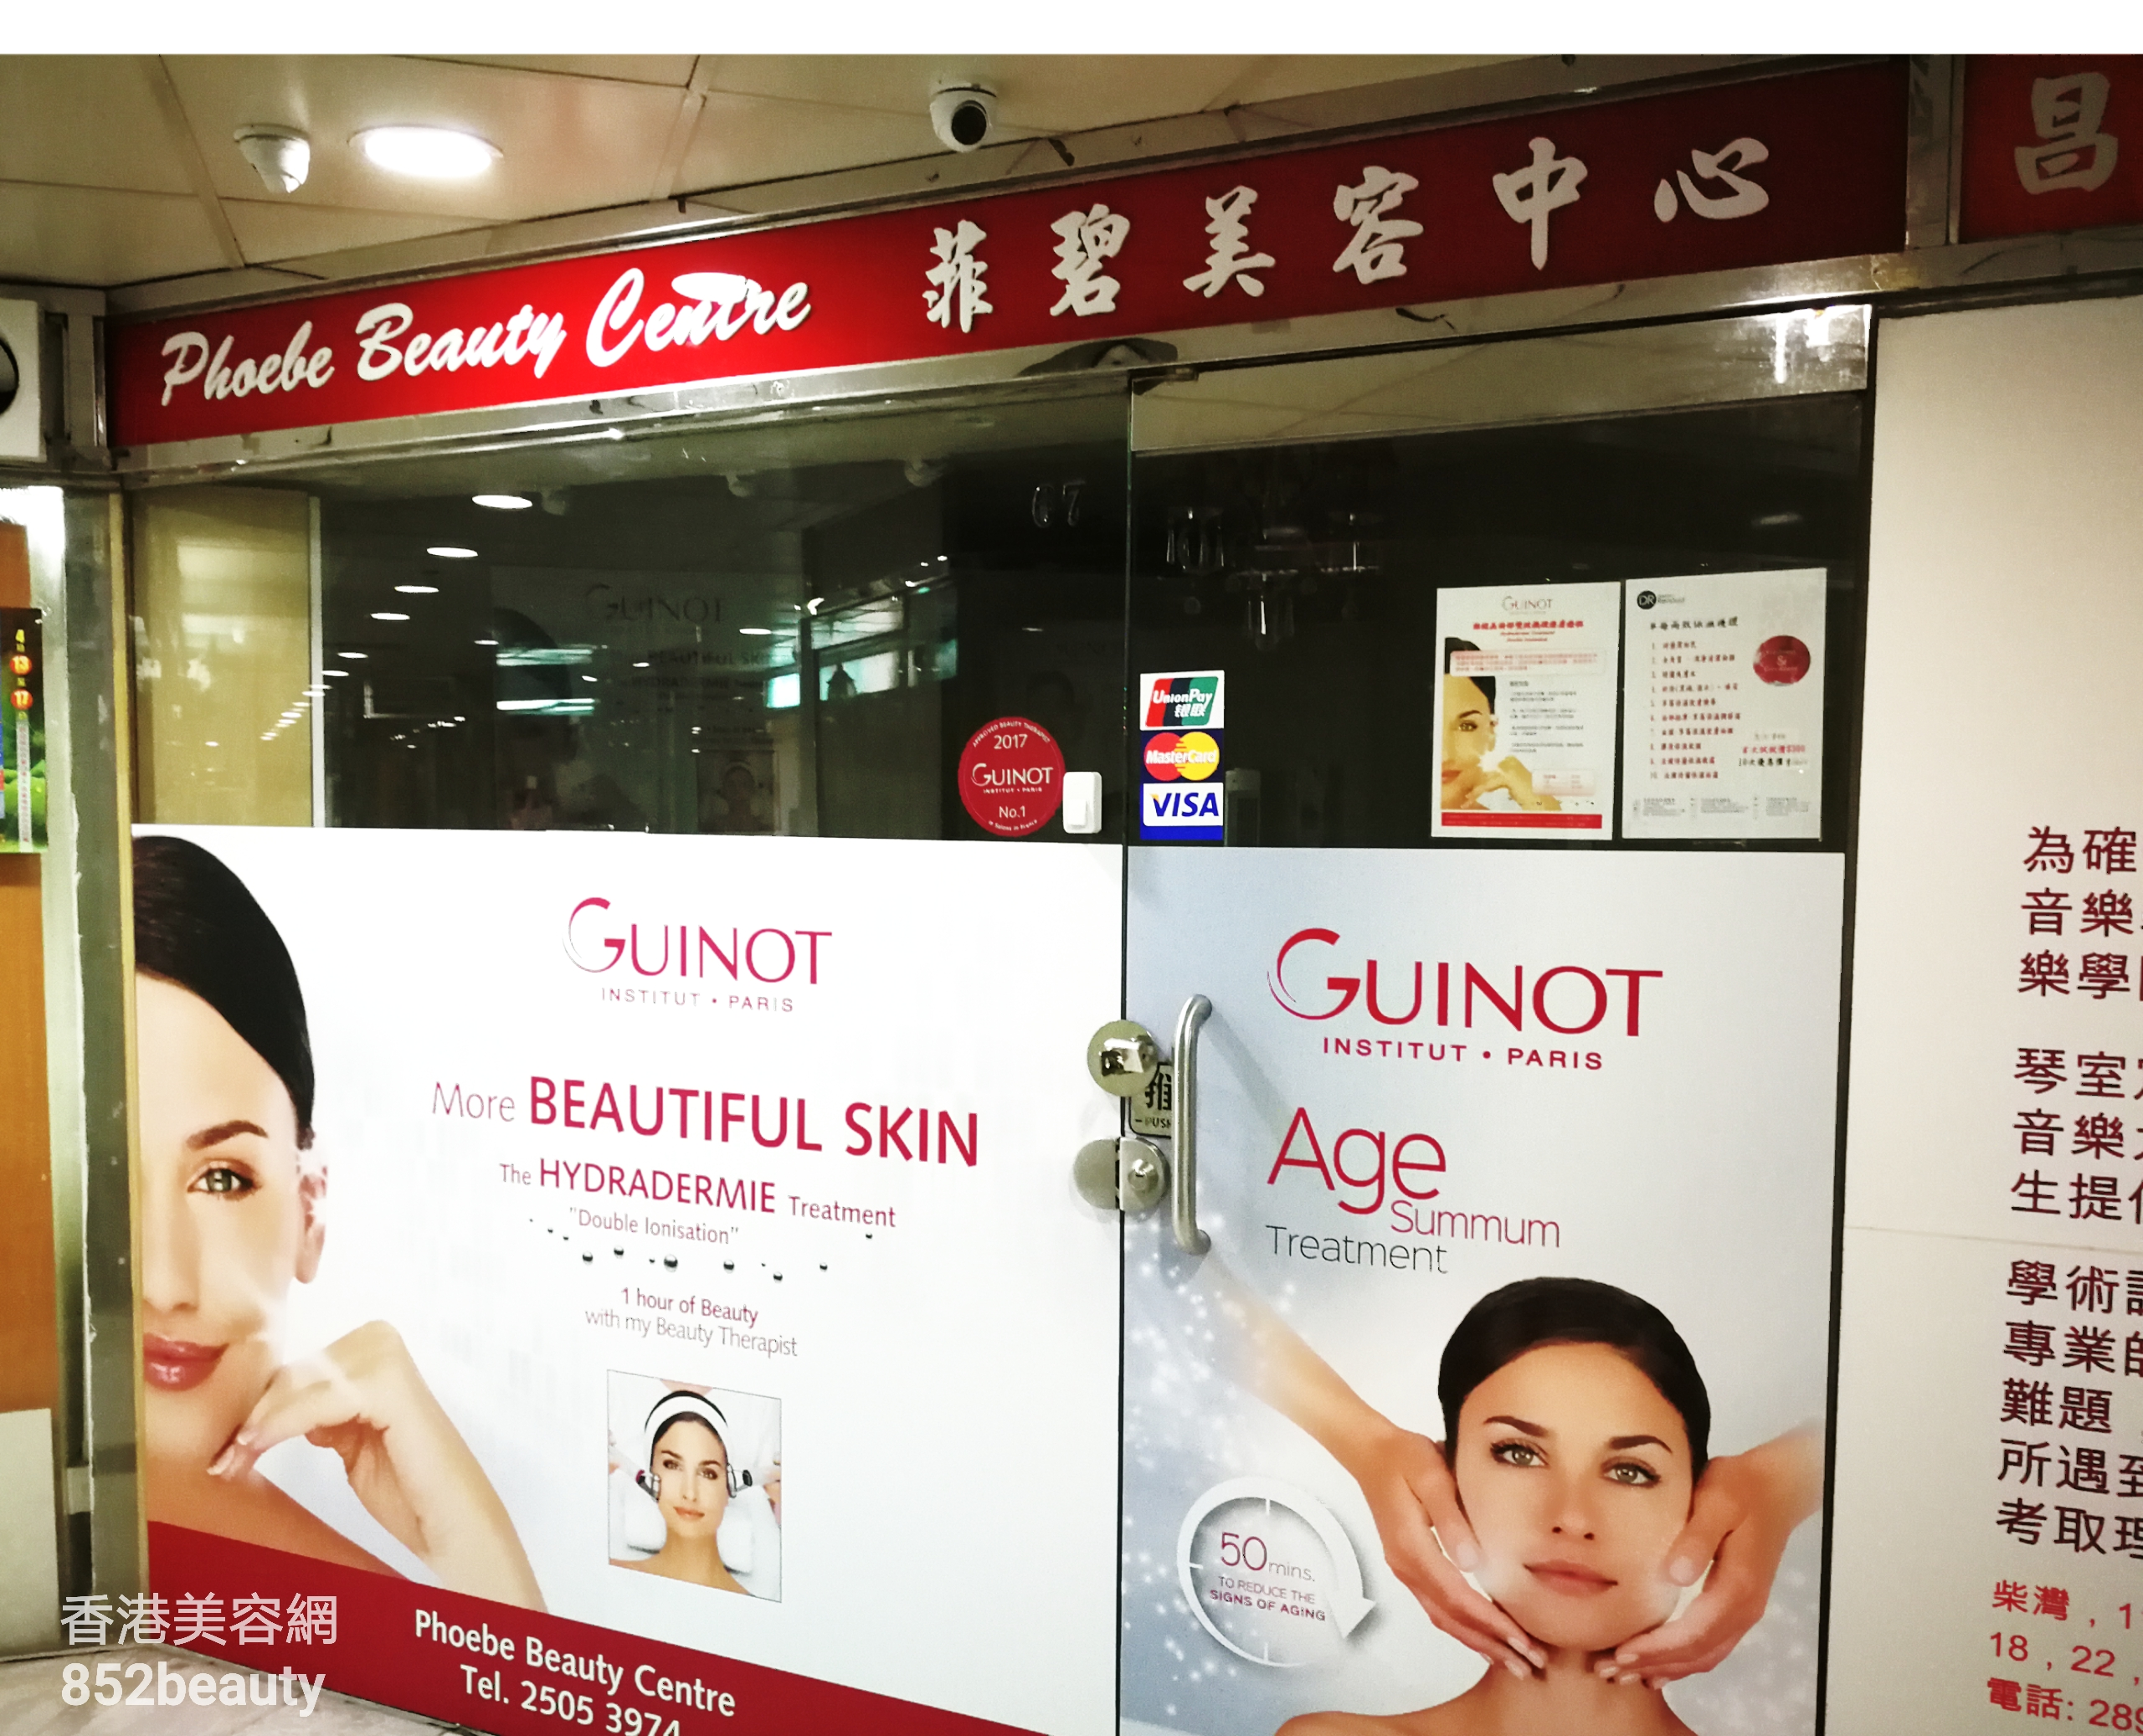 美容院 排行榜: Phoebe Beauty Centre